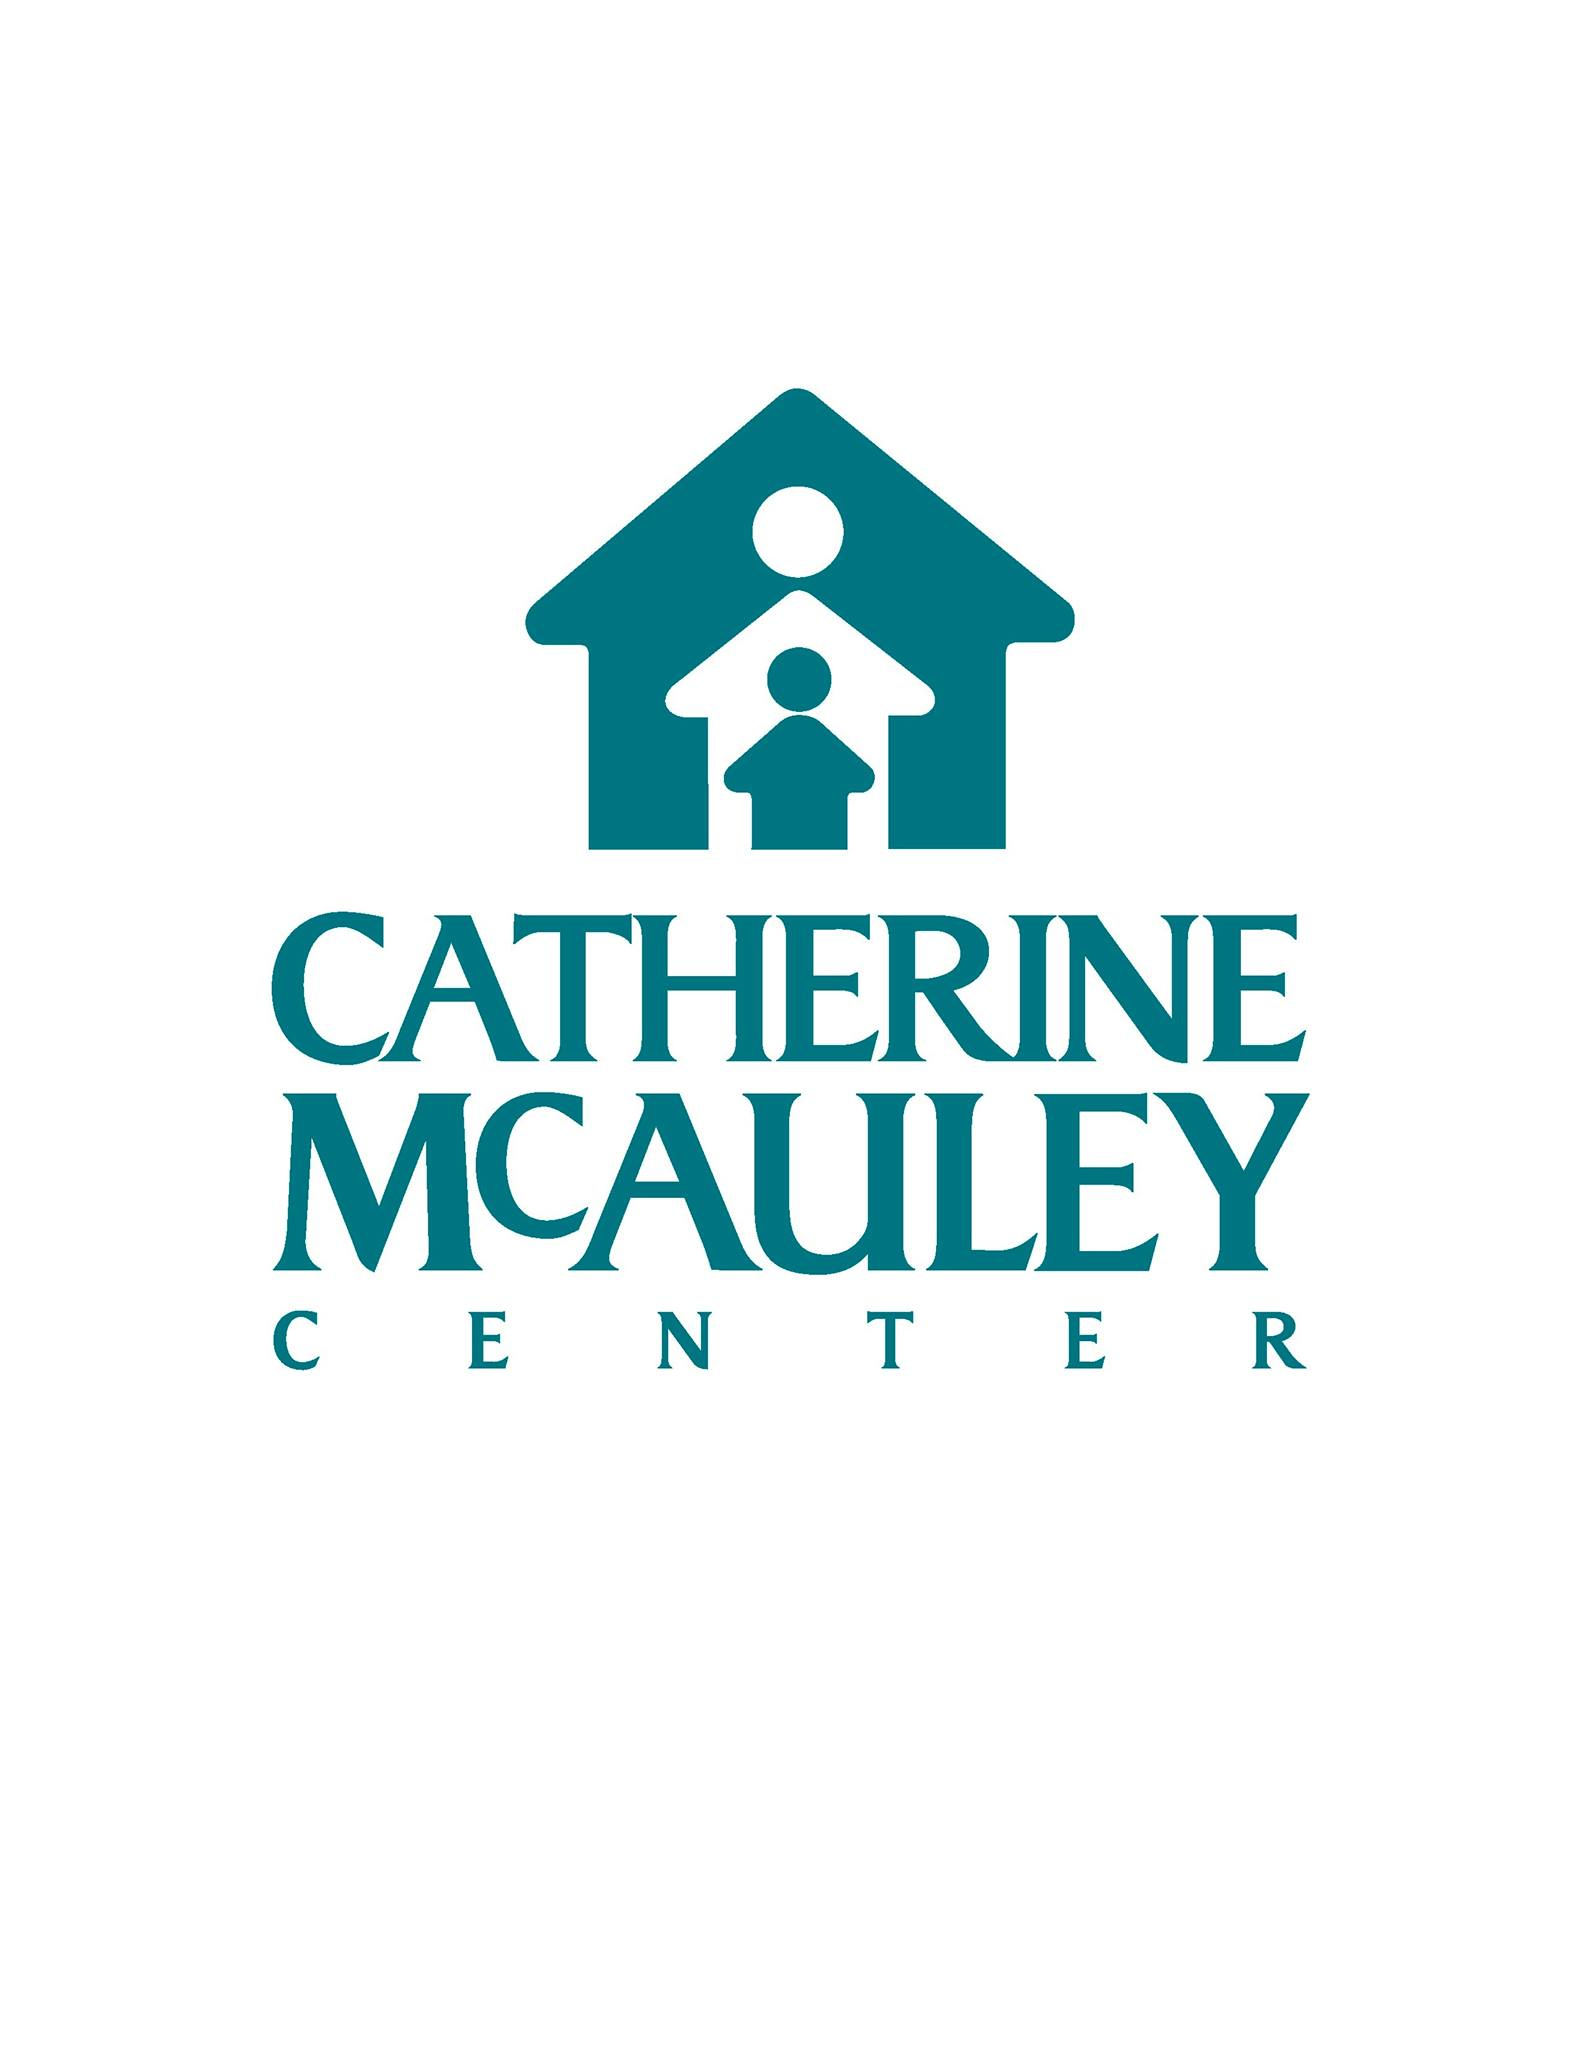 Catherine McAuley Center - Women's Services